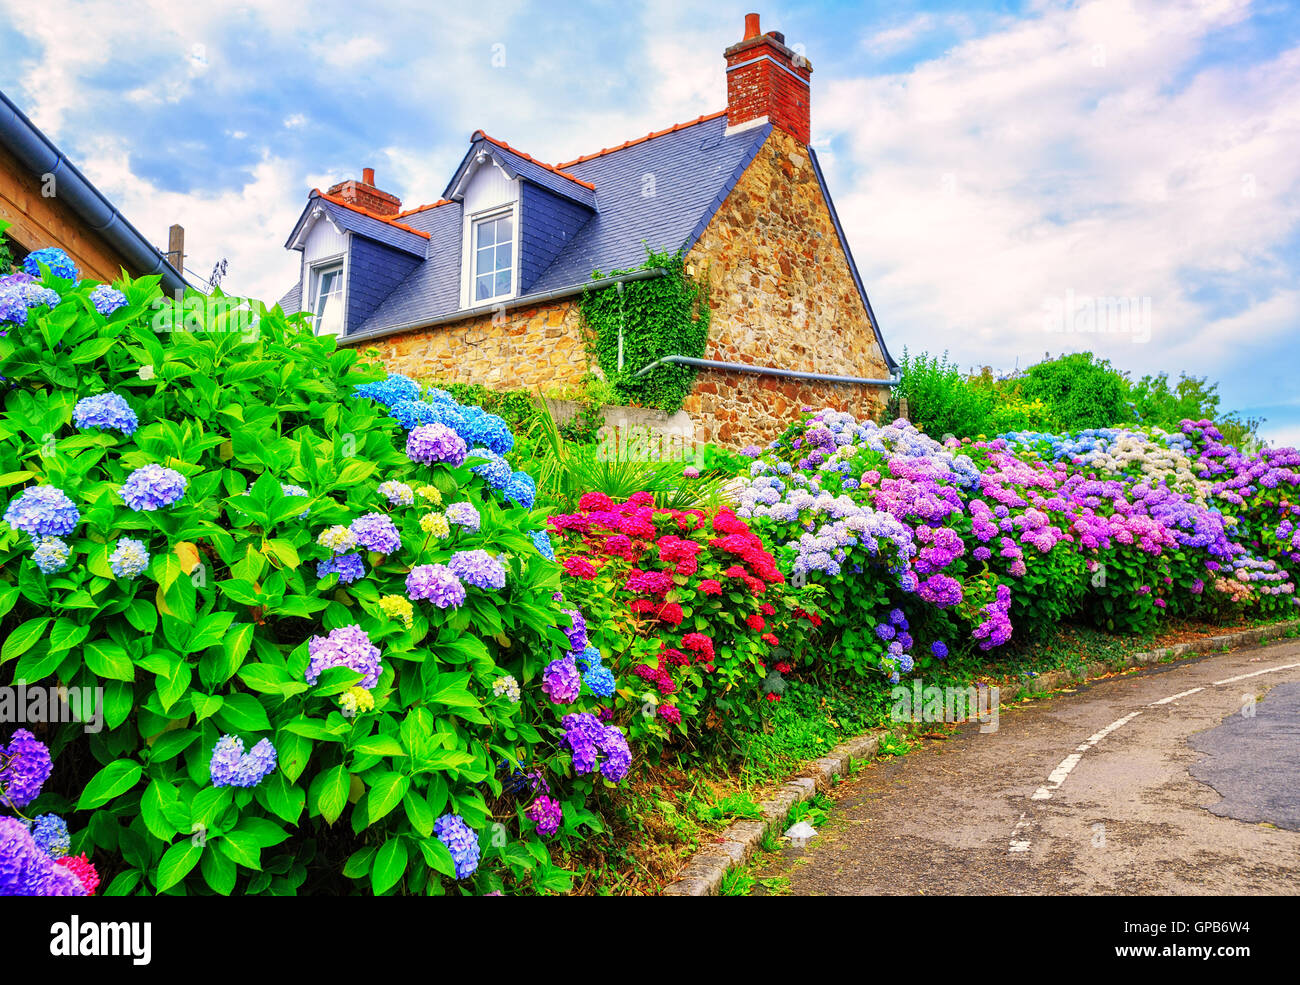 Colorful Hydrangeas flowers in a small village, Brittany, France - Stock Image